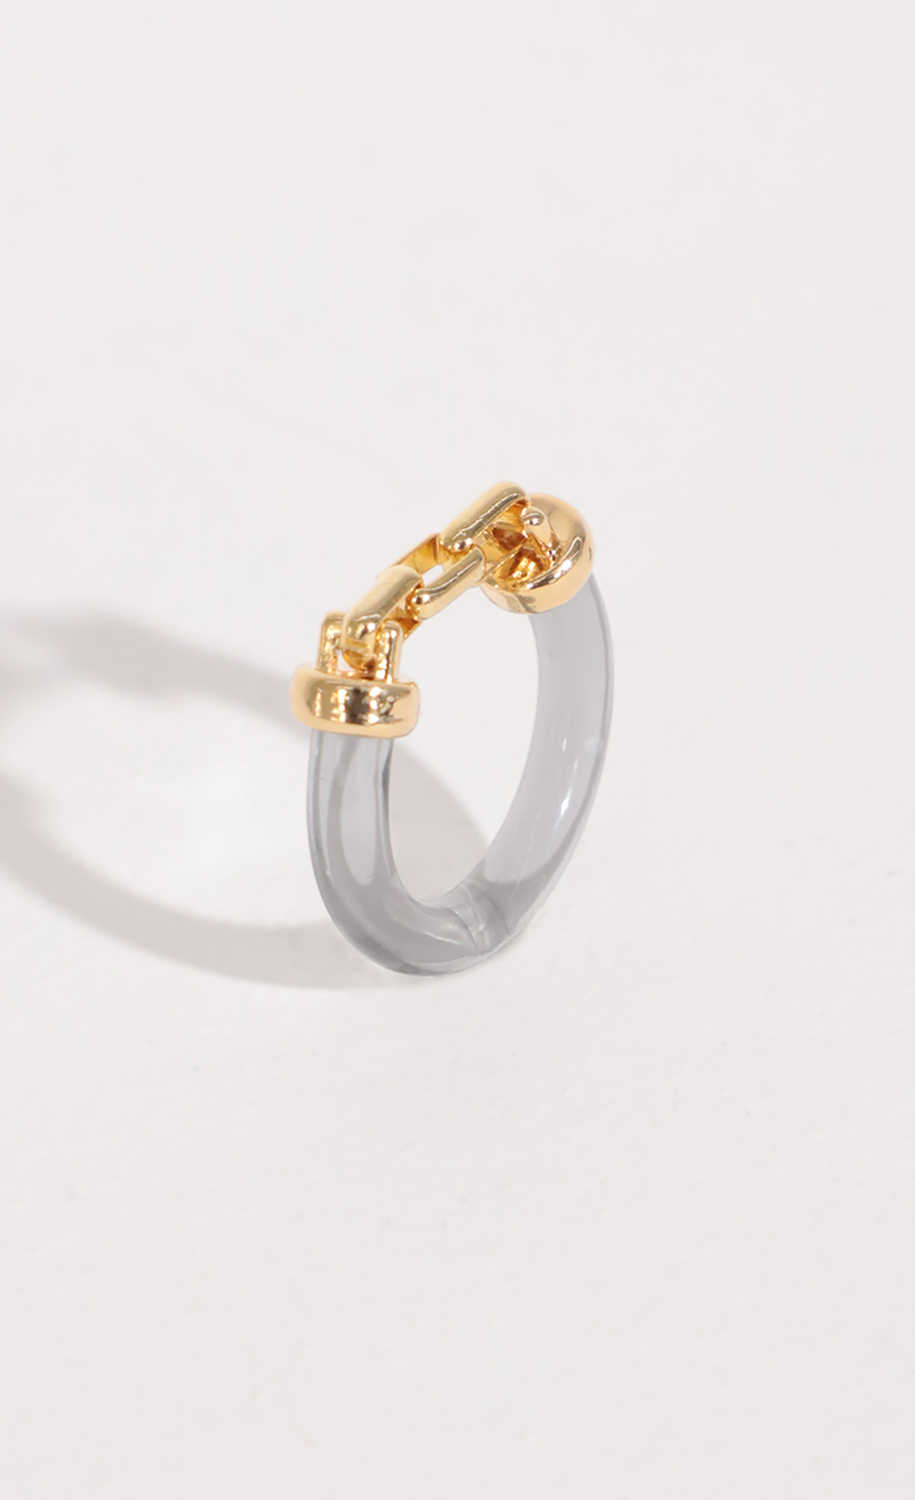 Chain Linked Acrylic Ring